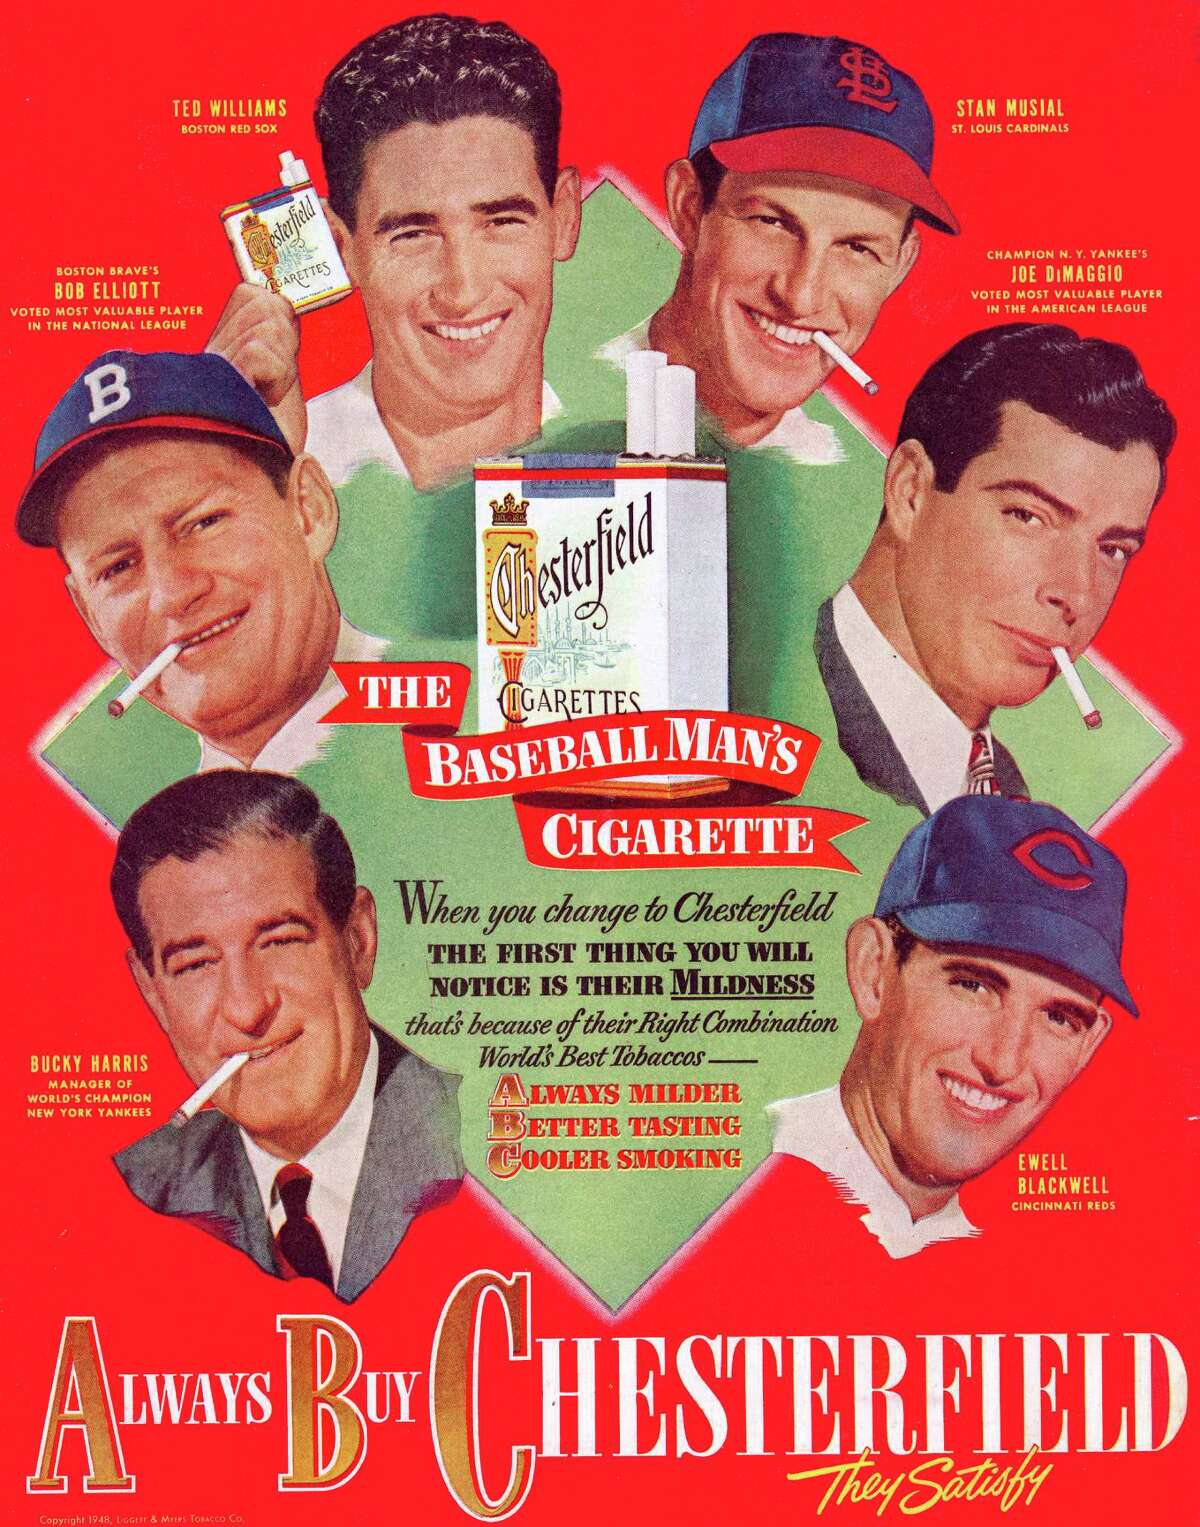 Chesterfield cigarettes hires baseball players to advertise their products in a magazine ad from around 1950, produced in Durham, North Carolina. The ad includes Ted Williams, Stan Musial, Joe DiMaggio, Jackie Jensen, Bucky Harris, and Ewell Blackwell.